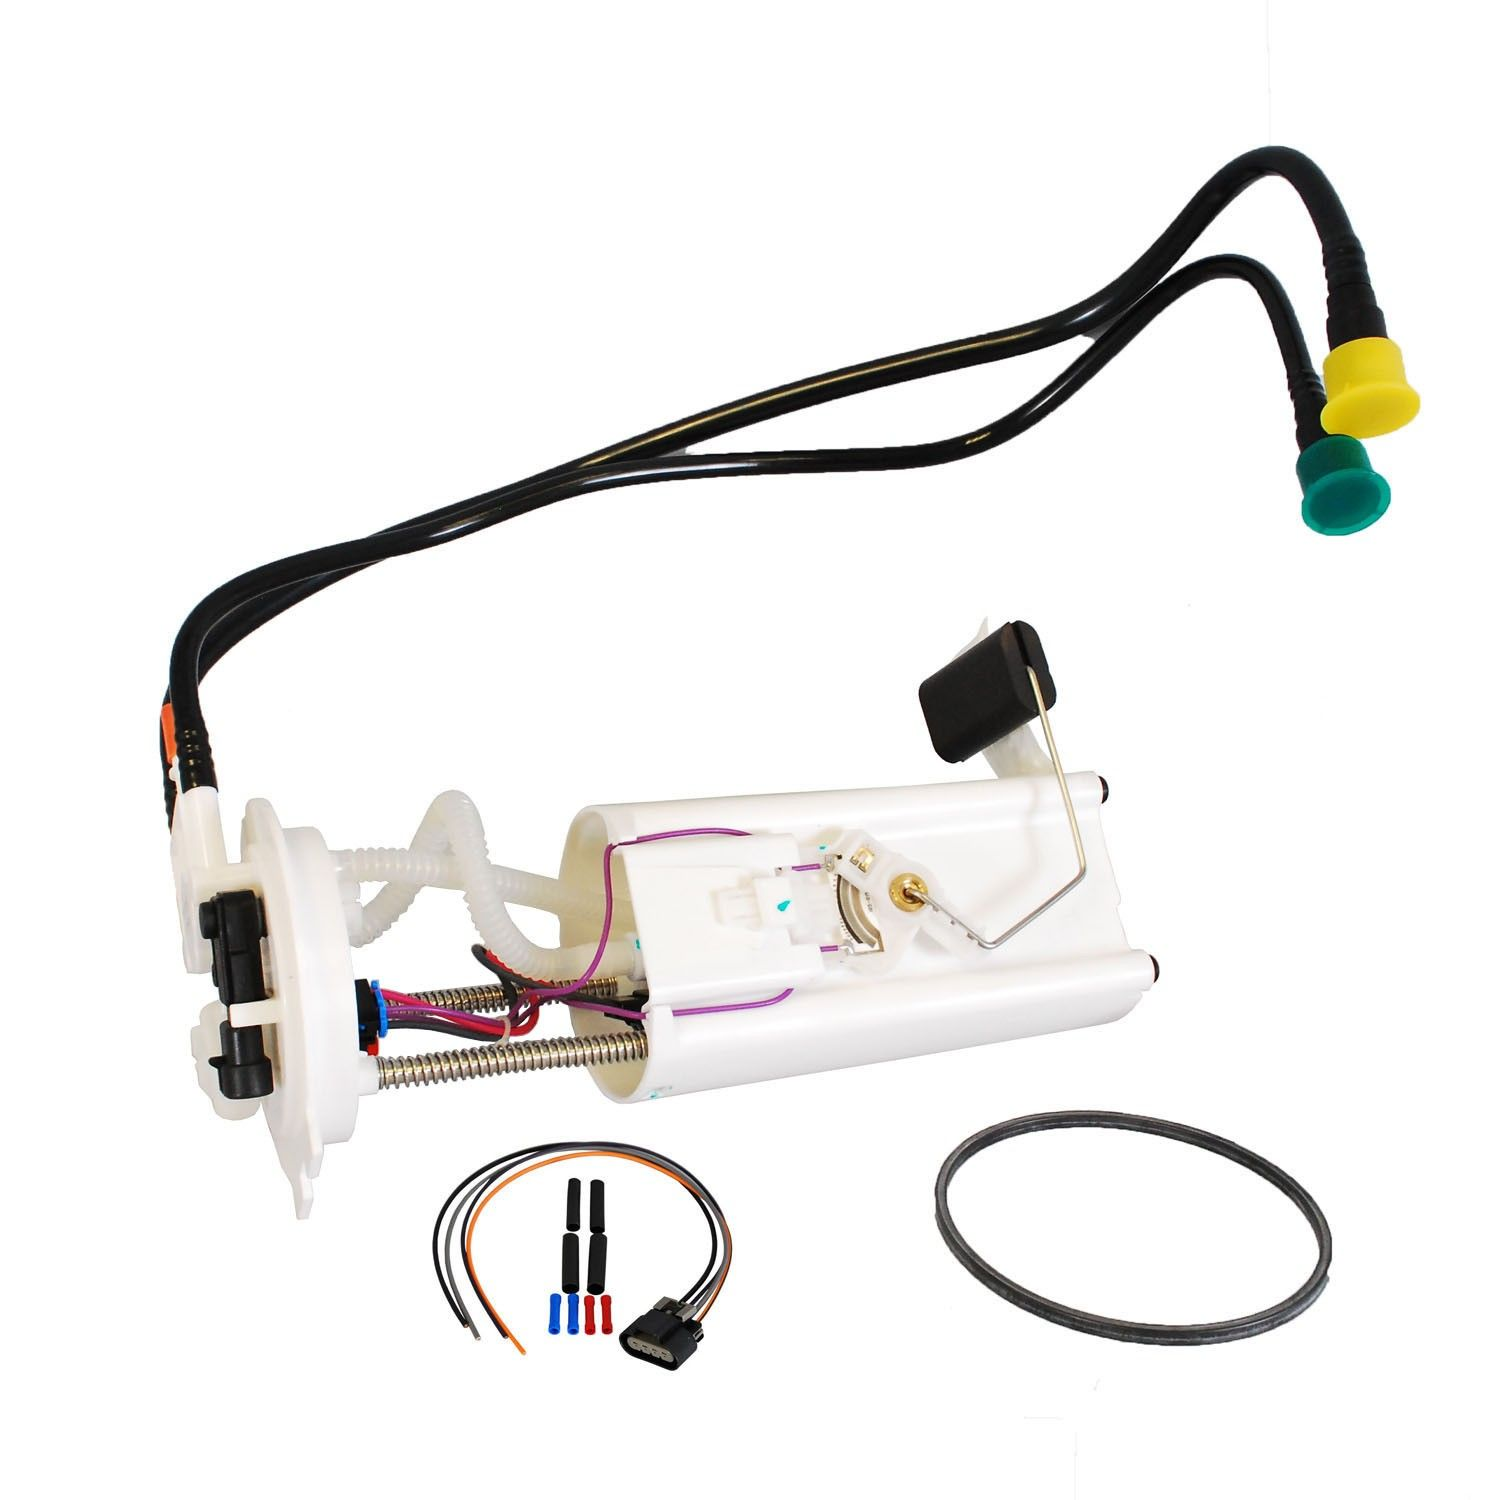 Oldsmobile Alero Fuel Pump Module Assembly Replacement Acdelco 2001 Filter 2000 4 Cyl 24l Denso 953 0023 Solution Turbine Design Upgrade Over Oe Eng Vin T